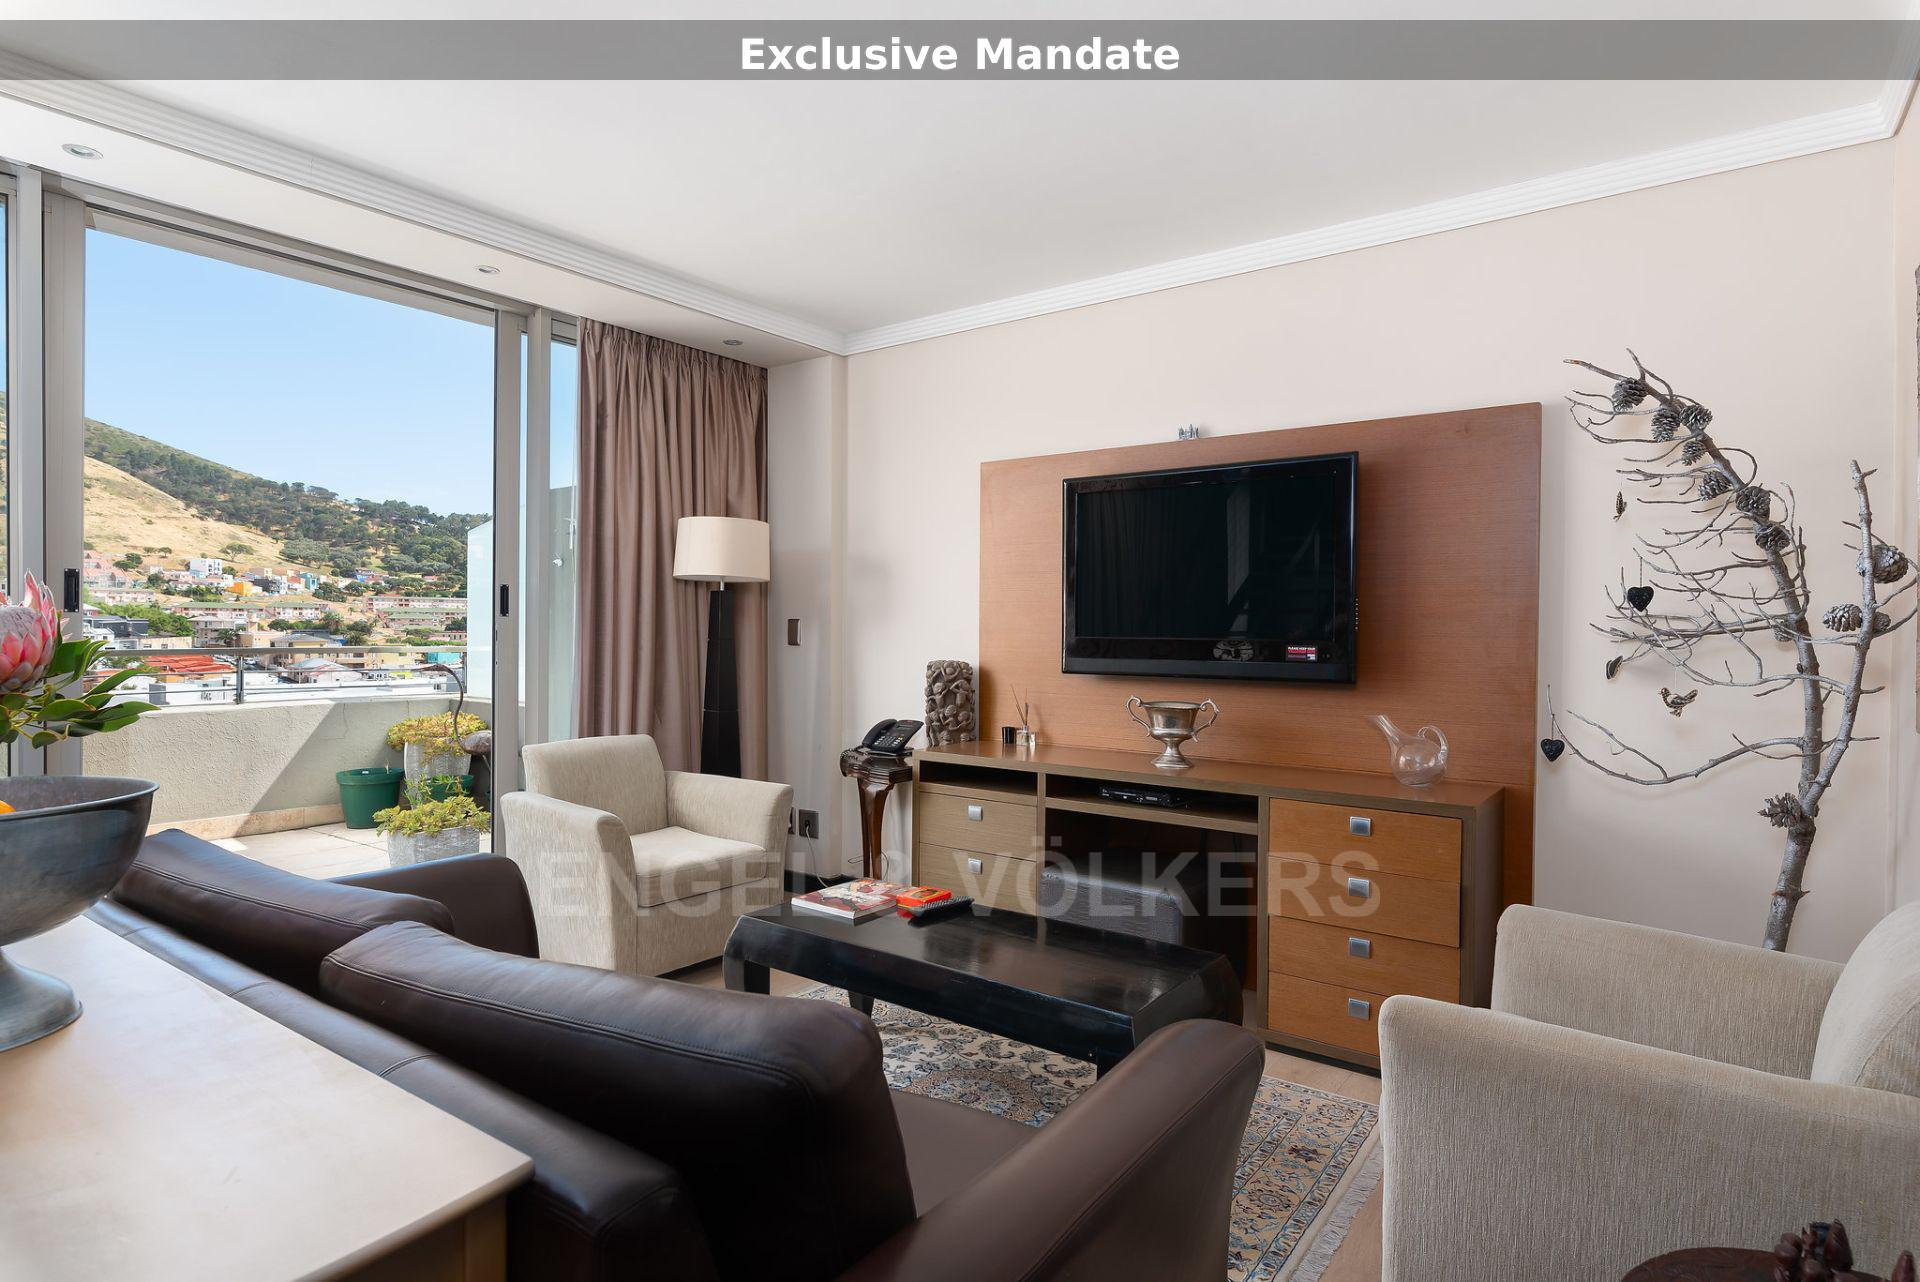 Apartment in City Centre - lounge.jpg